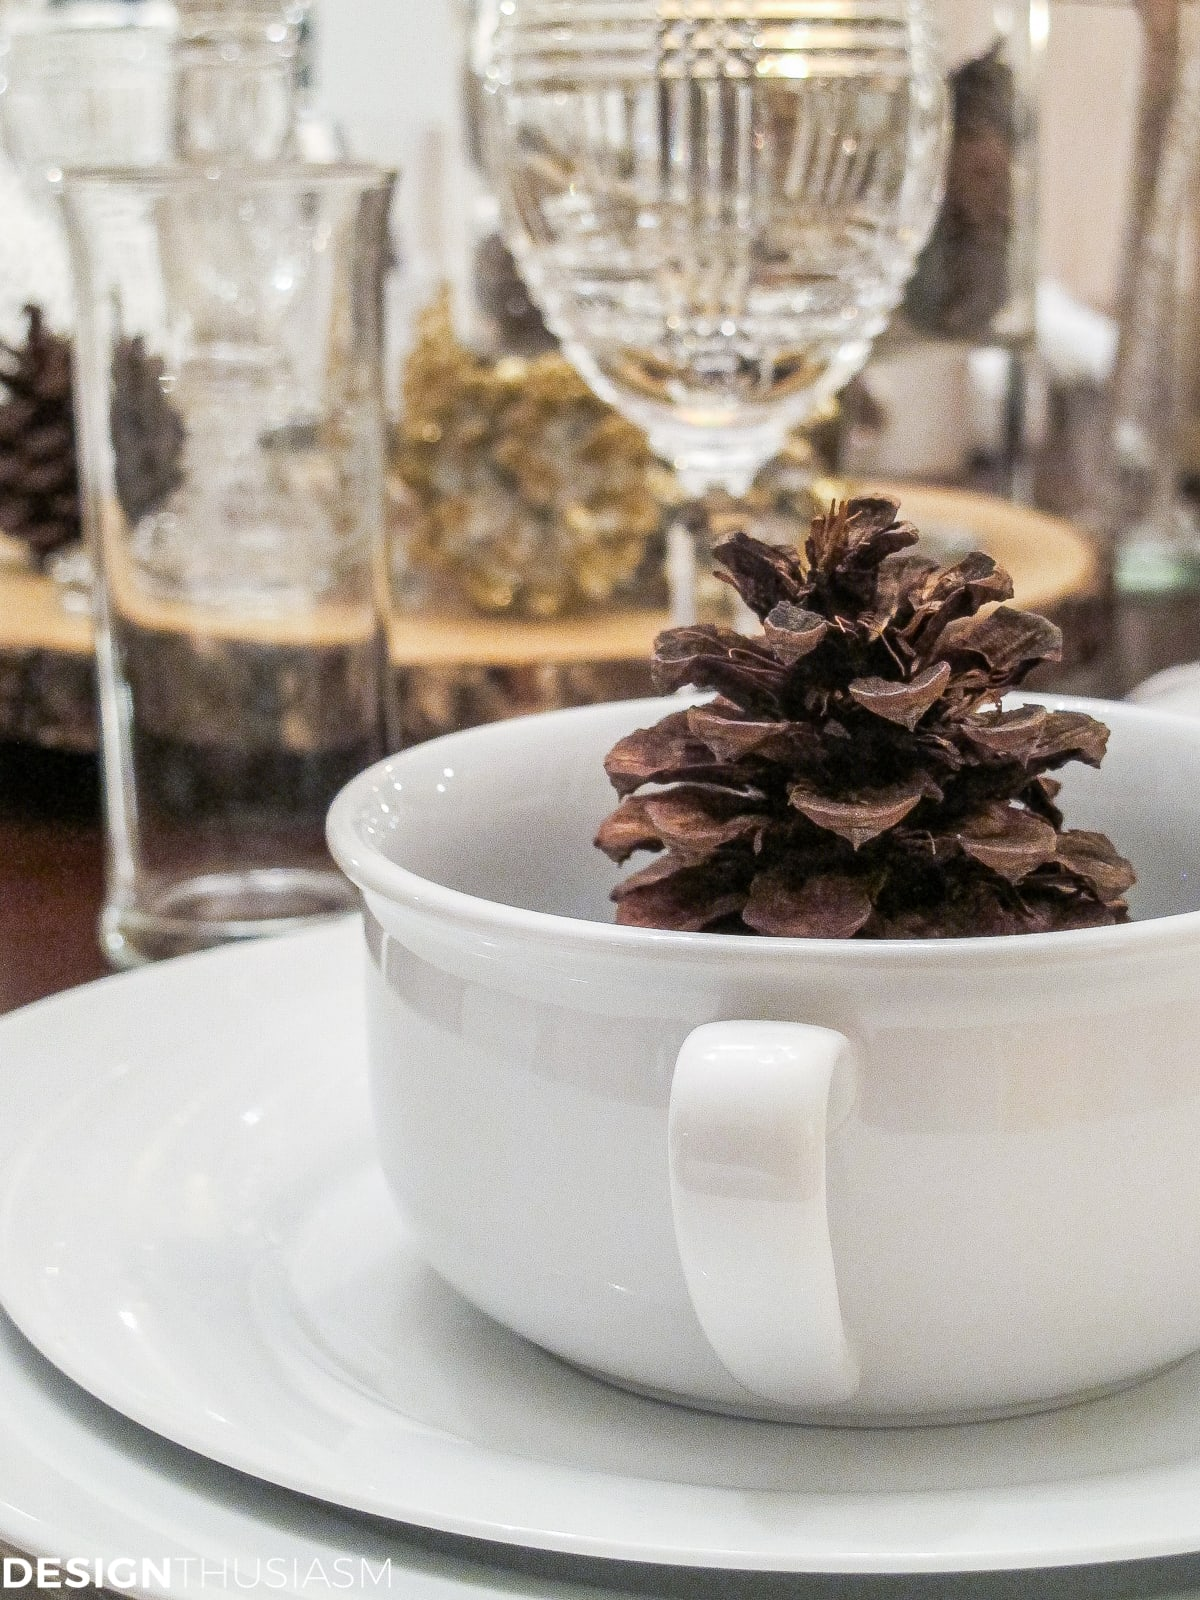 Winter Decorations Add Flavor to a White Tablescape | Designthuisasm.com